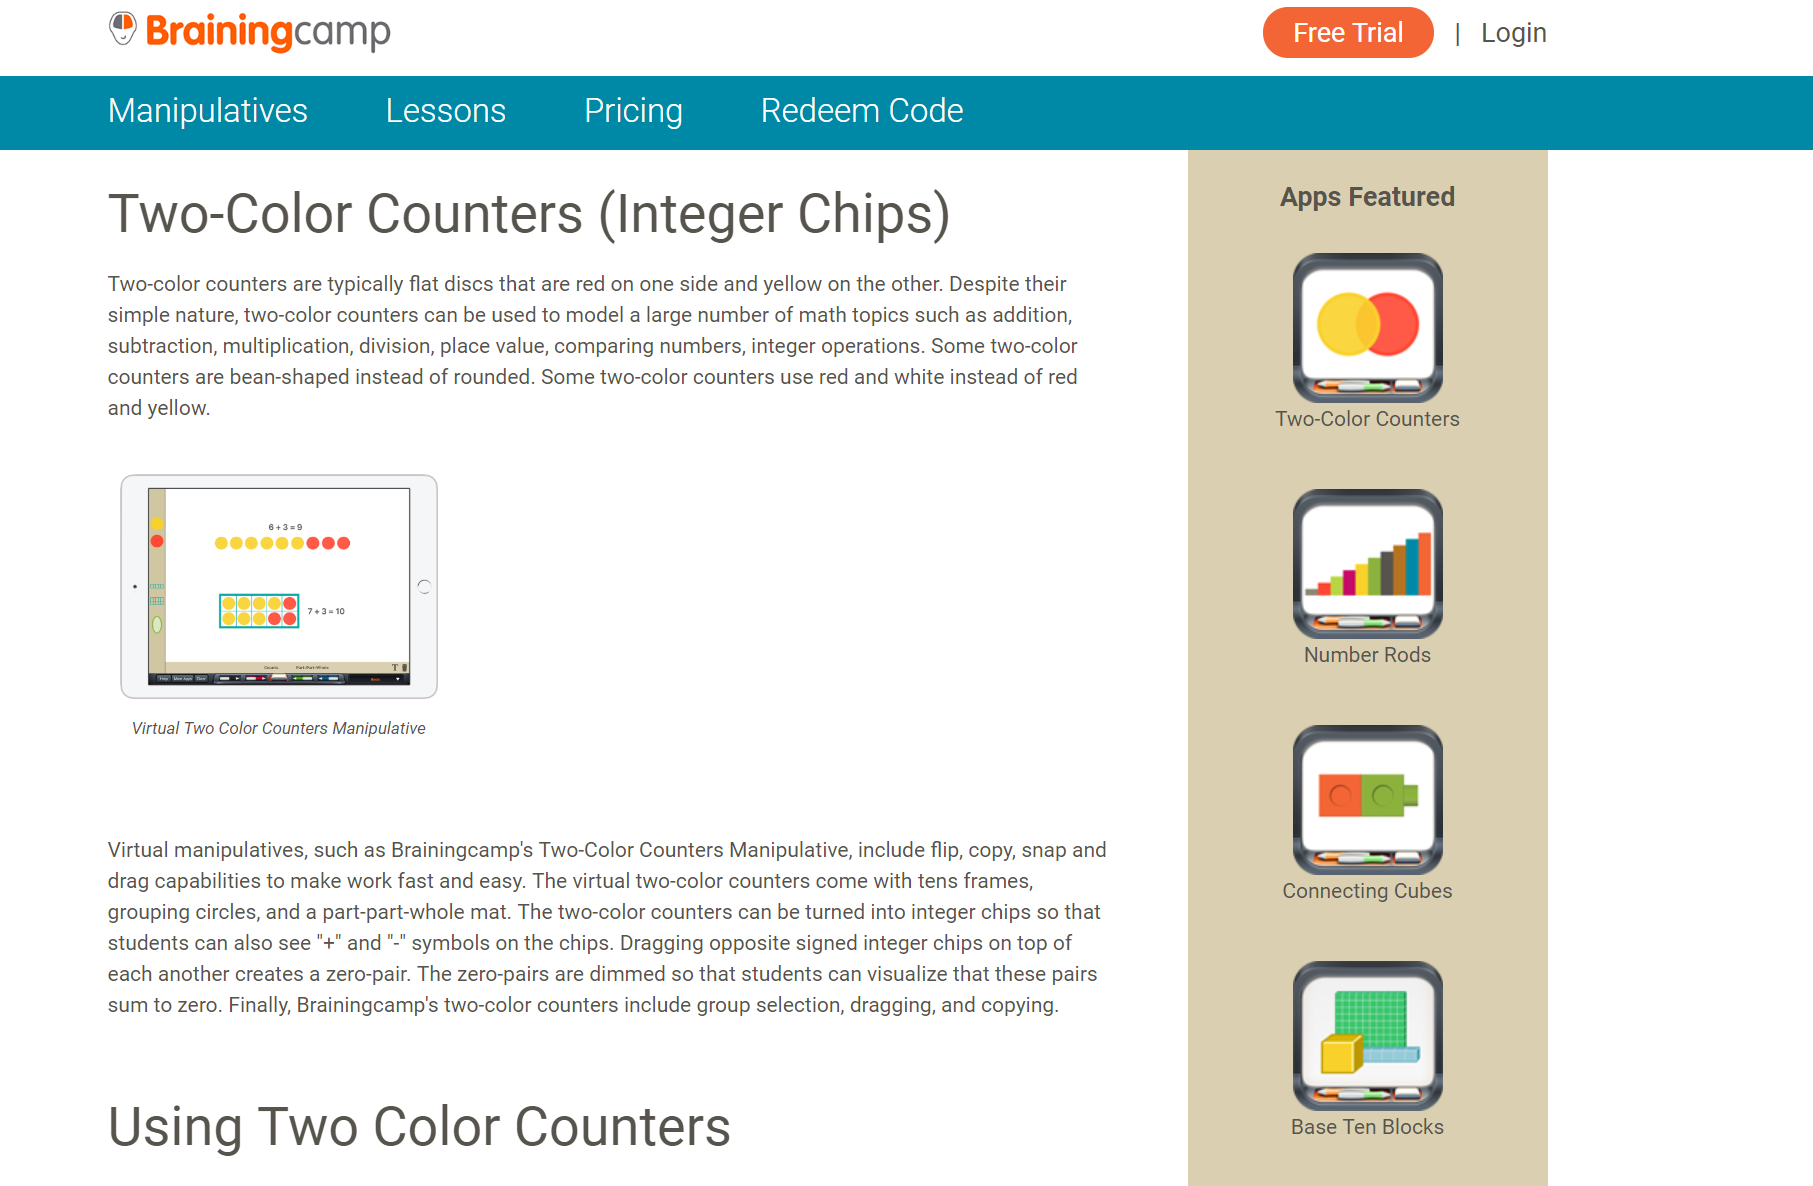 3) App- Two- Color Counters - Click on the image to open a description of Brainingcamp's Integer Chip app. Integer chips (either digital or tactile) can be used to help students model addition, subtraction, multiplication, and division of integers. They can be used to supplement traditional practice with integer computation from any textbook or resource.(We do our best to try to suggest free resources on Y Understand Math. However, we have yet to find a free, user-friendly digital integer chips tool. This is an area we have identified as a need in visual mathematics. For now, we recommend the Brainingcamp suite of manipulative apps. Each app is $2.99 by itself, $59/yr for all 15 manipulatives on one device, or $95/year for all 15 manipulatives on 1 teacher and up to 30 student devices).